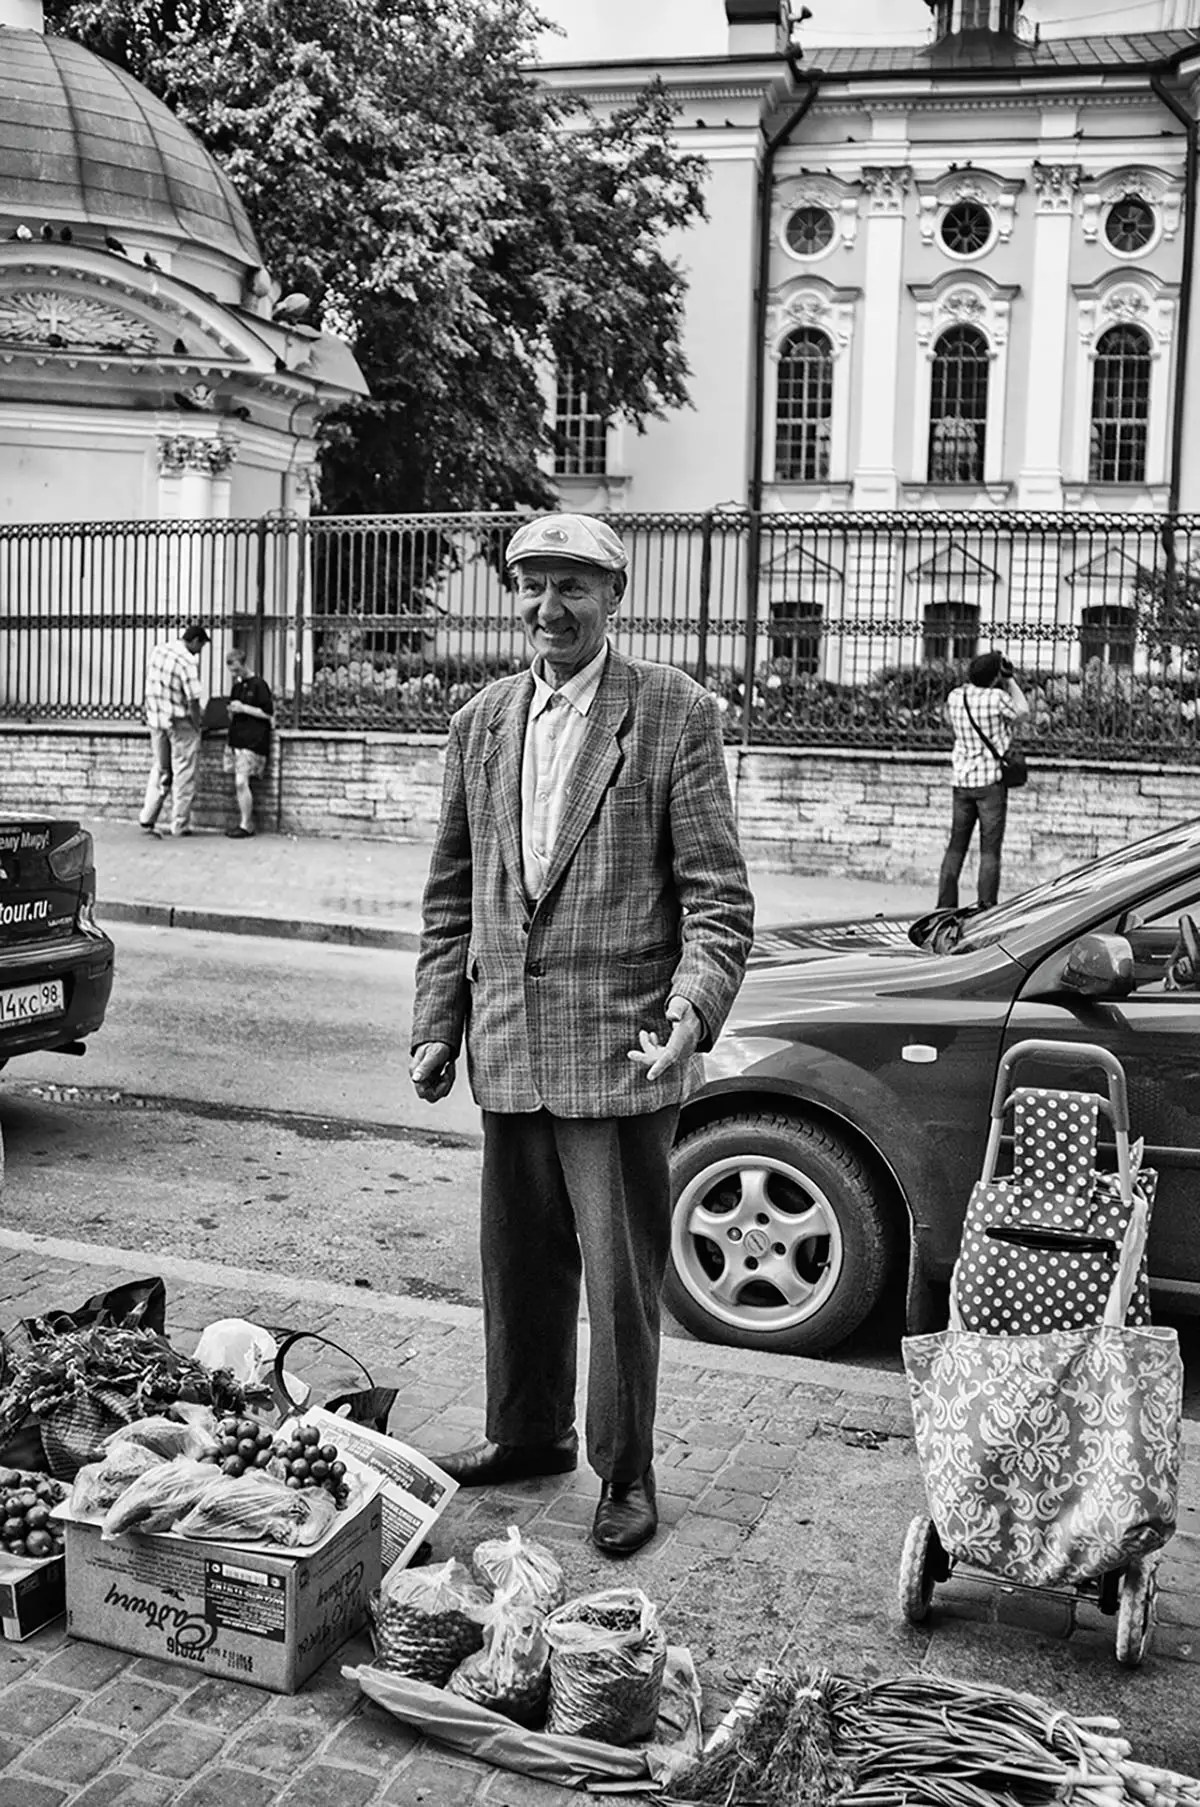 """Victor, age 72. Profession: Driver. Passion or Dream: """"I would like to have an interesting life, more money, and to go to the Black Sea. I would also like to have a place form where I can trade."""""""